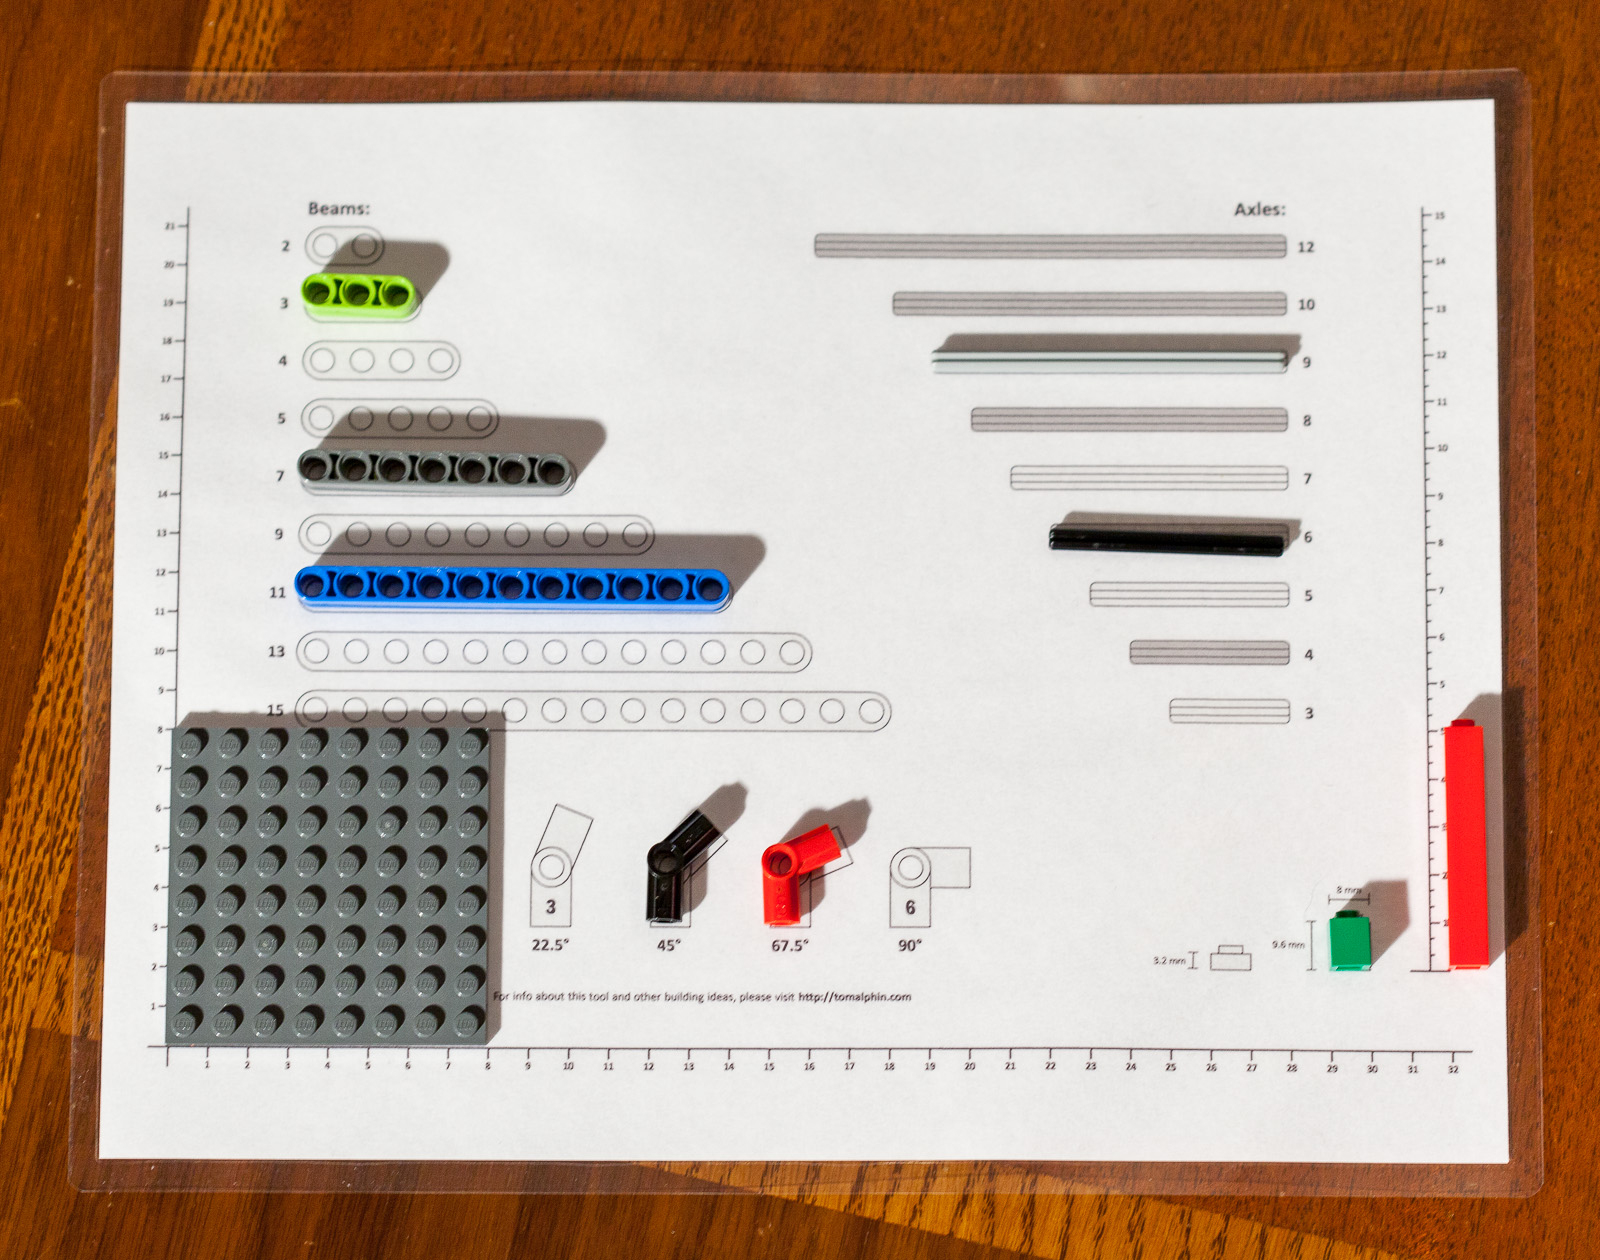 Lego Ruler And Sorting Tool – Tom Alphin